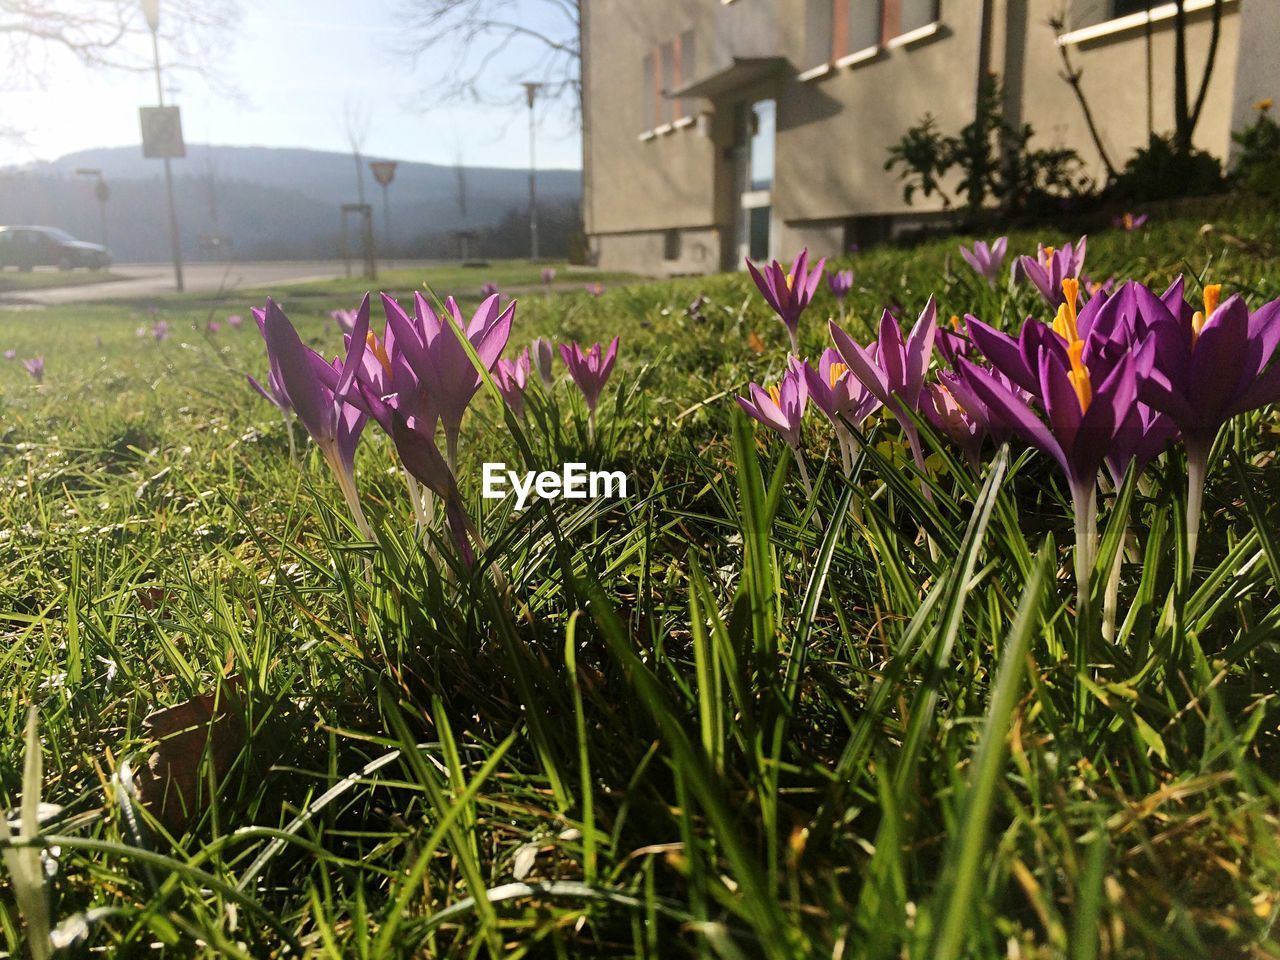 flower, beauty in nature, growth, nature, petal, fragility, freshness, purple, no people, outdoors, day, flower head, grass, plant, blooming, close-up, building exterior, crocus